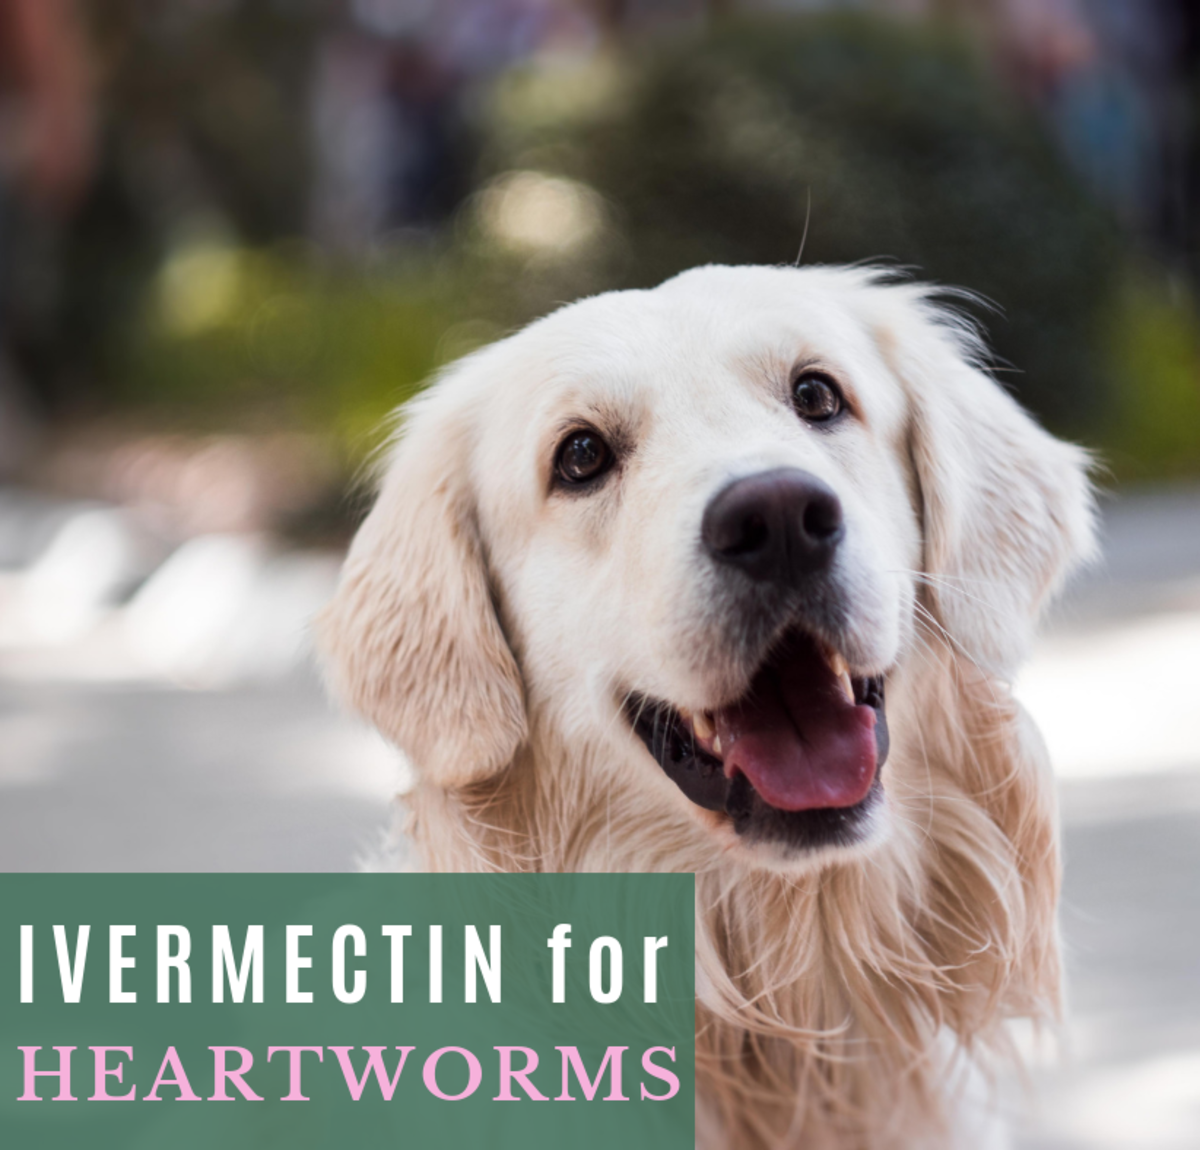 If your dog's heartworms are caught early, ivermectin can be the safest treatment.